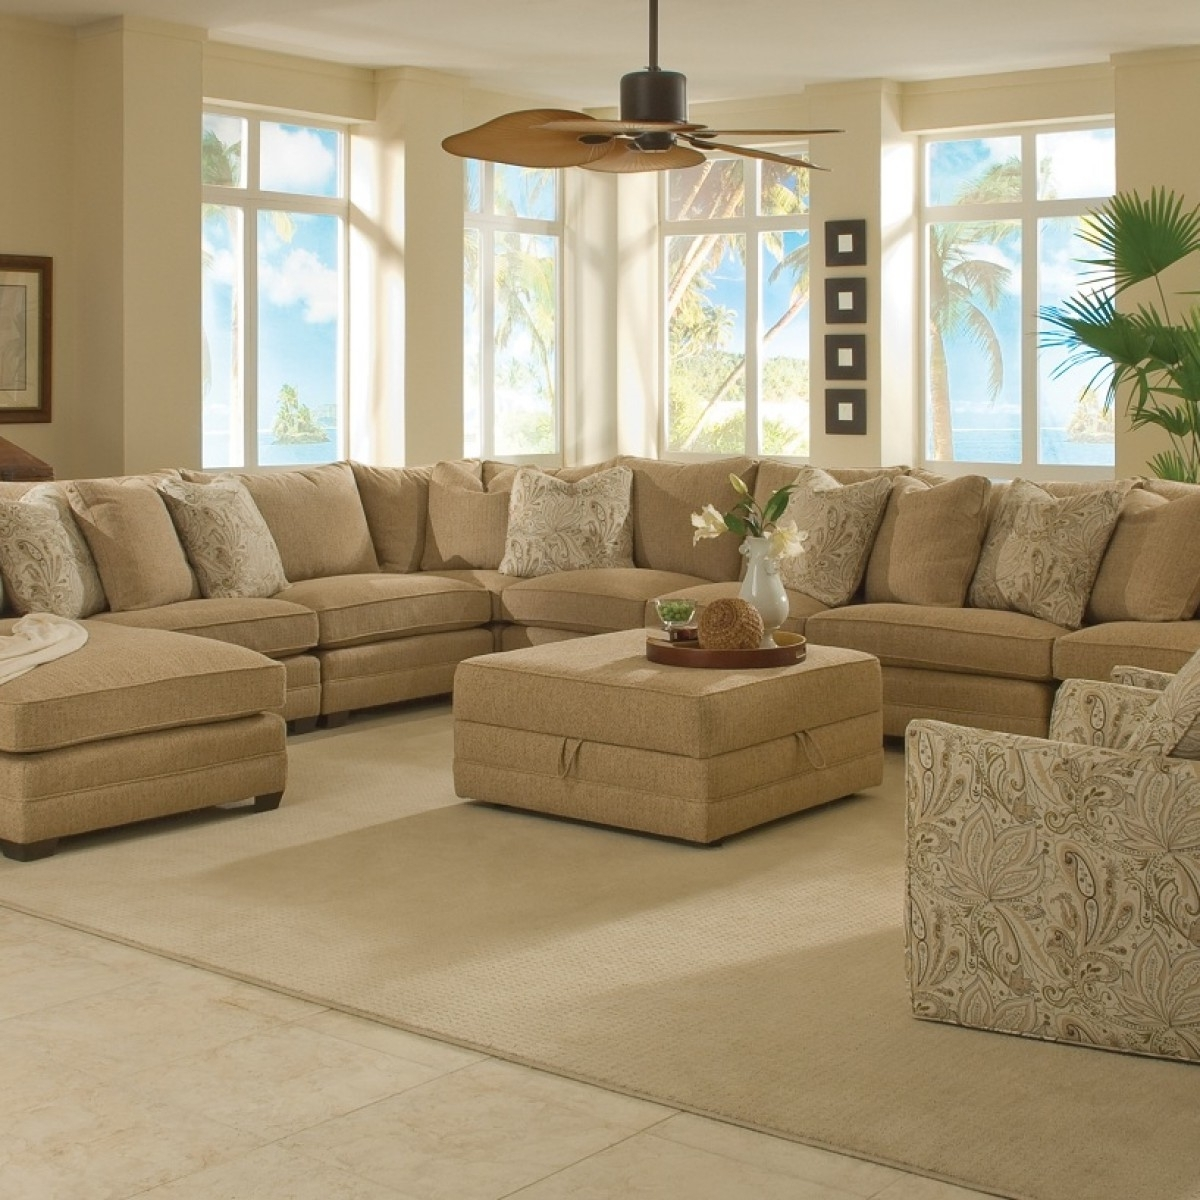 Preferred Factors To Consider Before Buying An Extra Large Sectional Sofa In Austin Sectional Sofas (View 11 of 15)